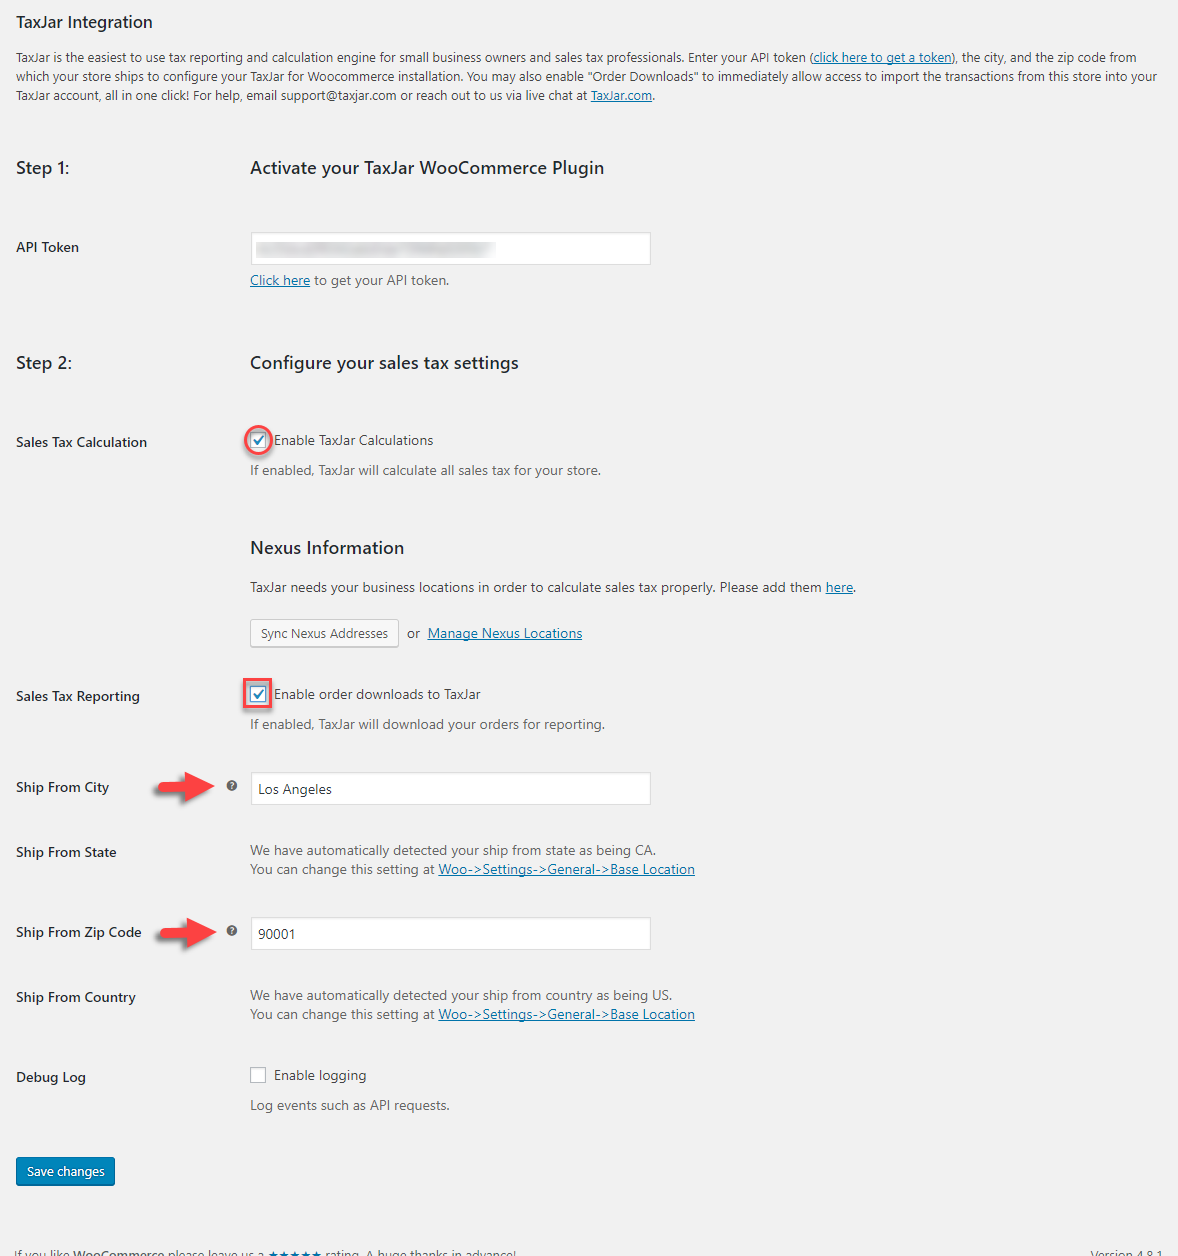 You need to enter some of the fundamental details here for TaxJar to work